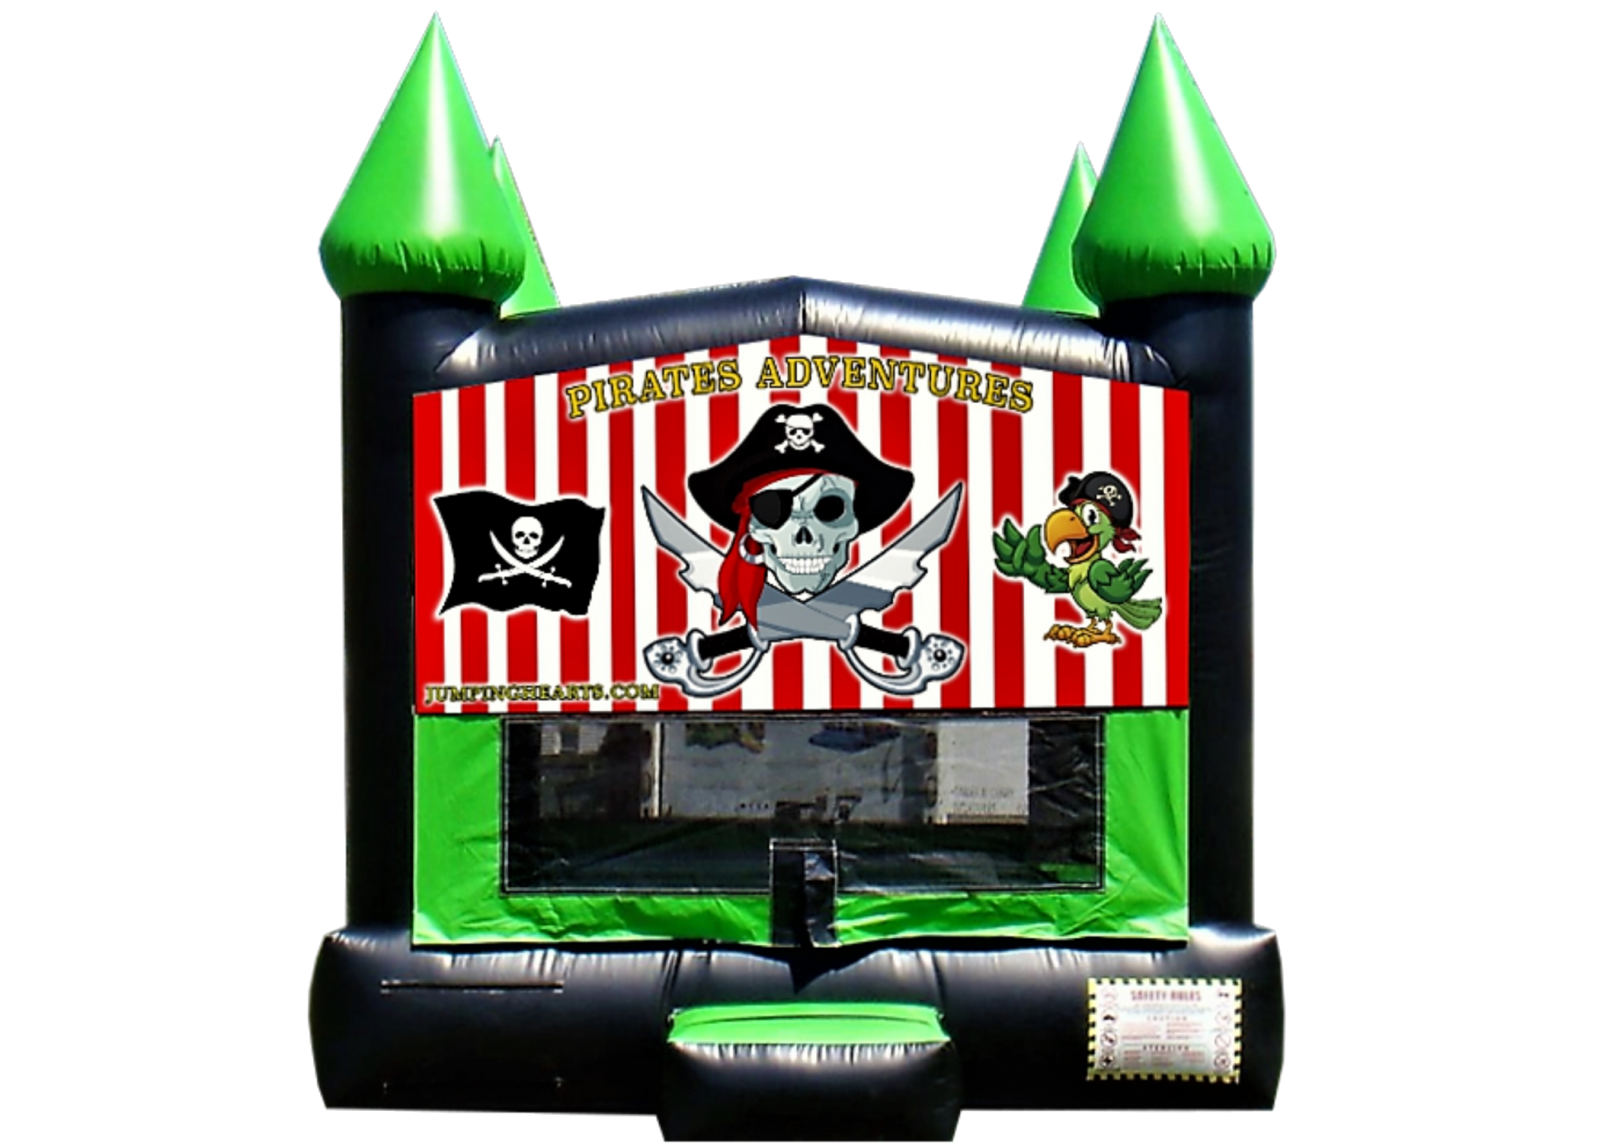 Pirate Bounce house Nashville